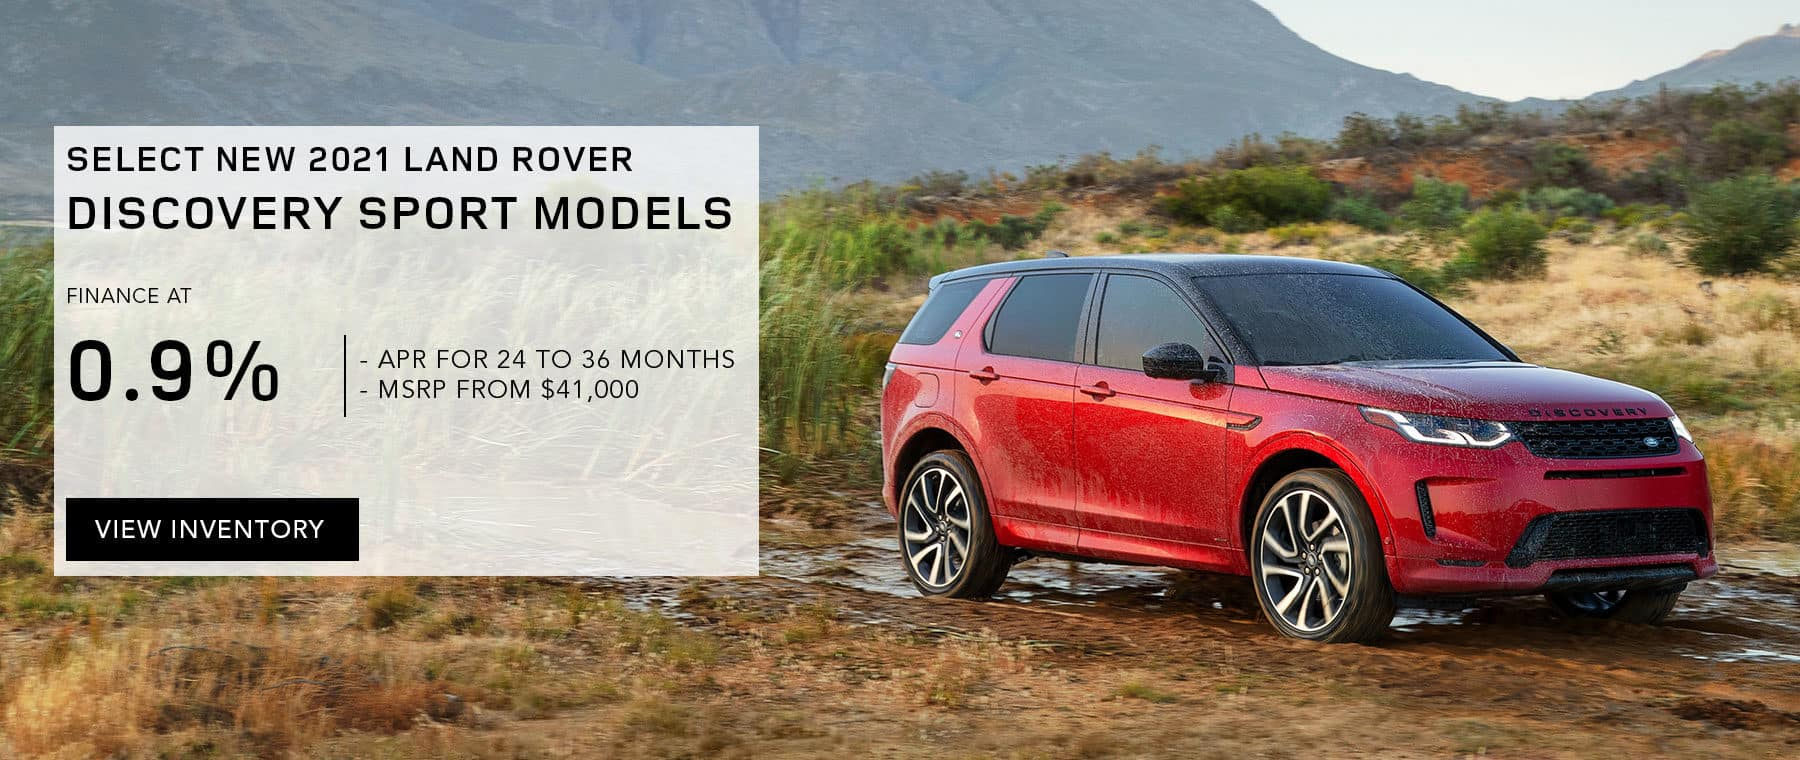 SELECT NEW 2021 LAND ROVER DISCOVERY SPORT MODELS. FINANCE AT 0.9% APR FOR 24 TO 36 MONTHS. EXCLUDES TAXES, TITLE, LICENSE AND FEES. OFFER ENDS 9/30/2021. DISCOVERY SPORT PARKED IN A FIELD.